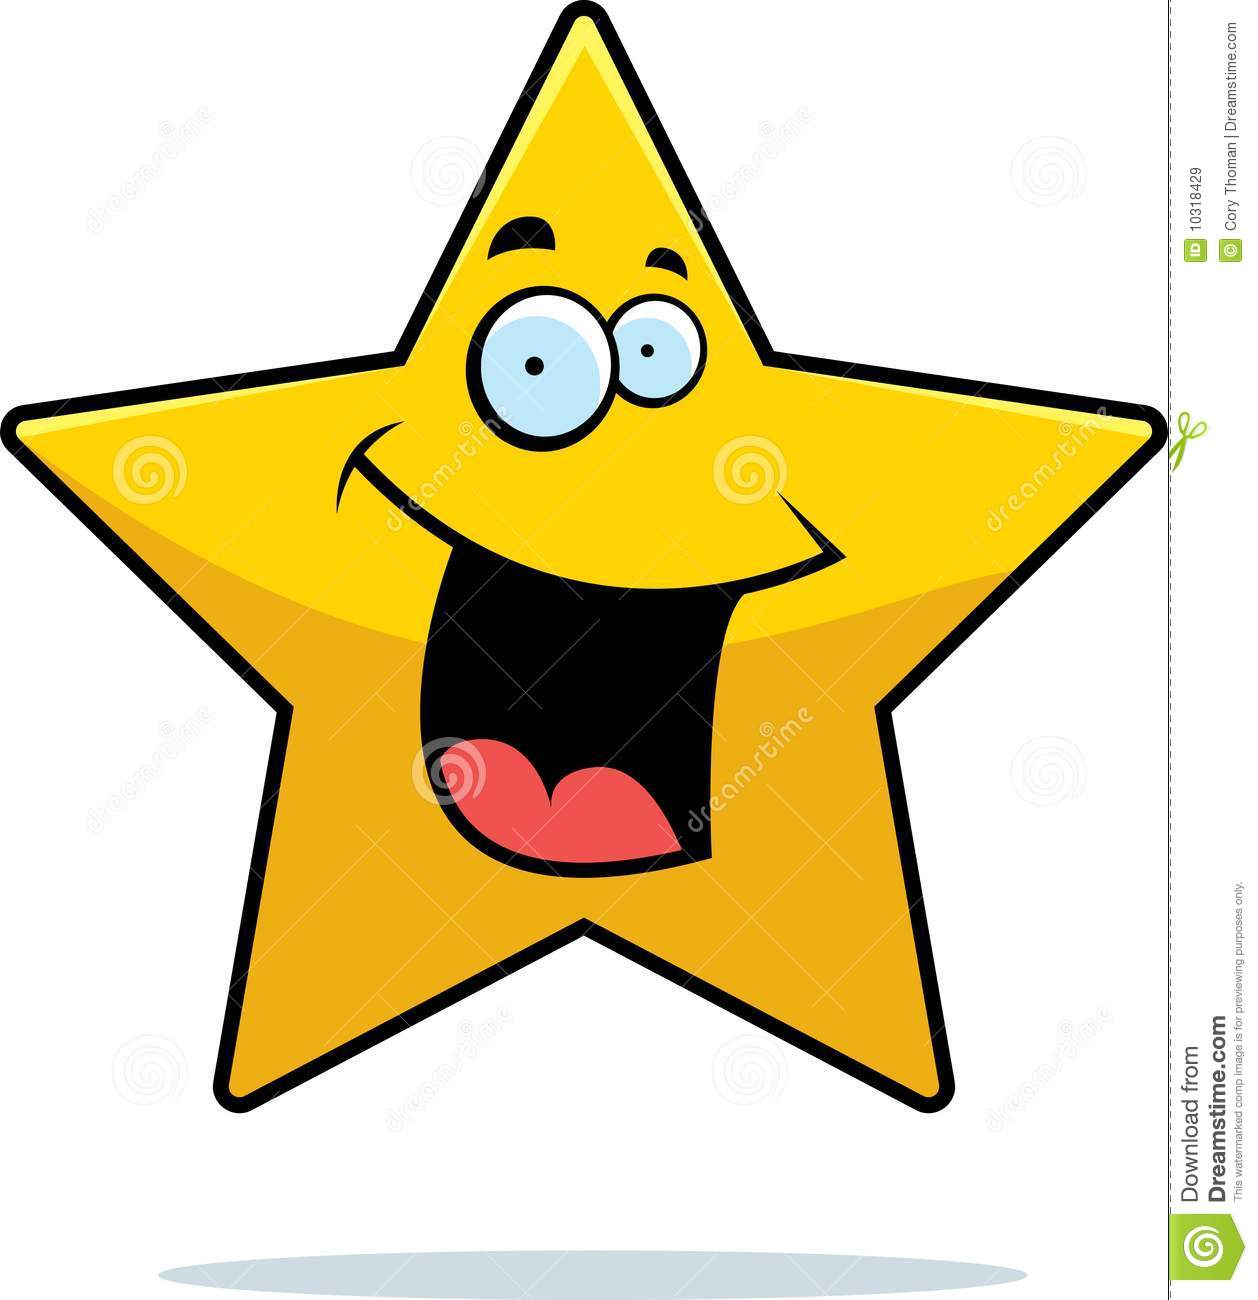 Star Smiling Royalty Free Stock Images - Image: 10318429